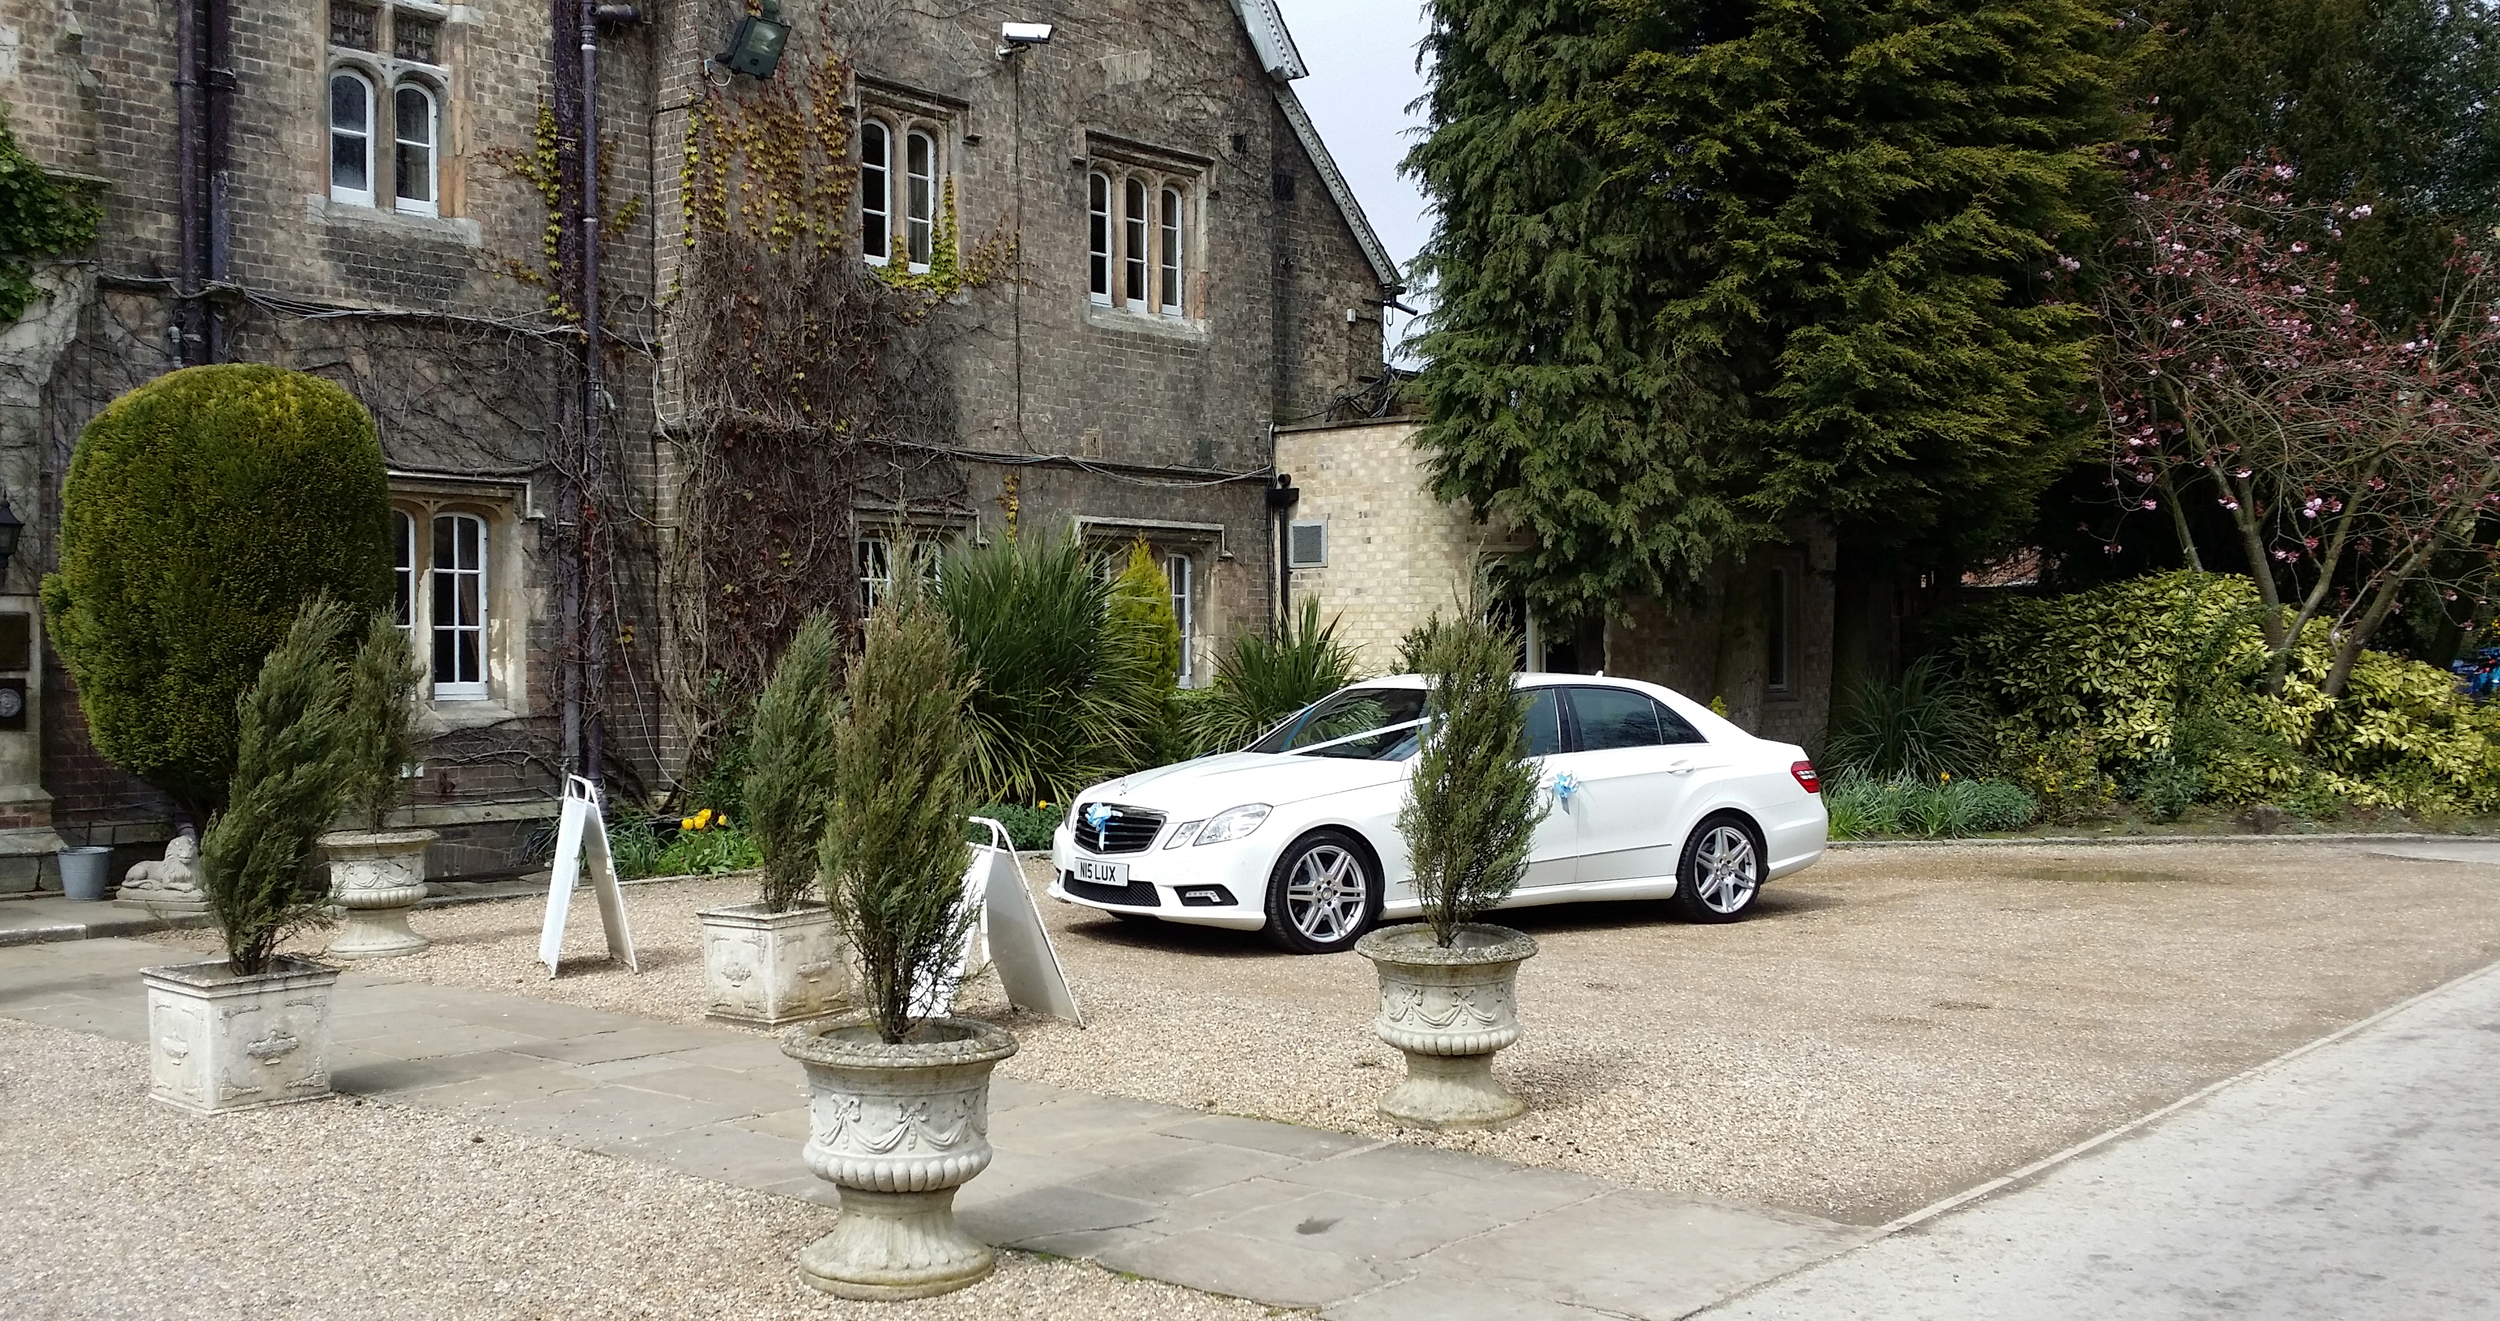 Wedding car at the Parsonage Hotel in York, North Yorkshire